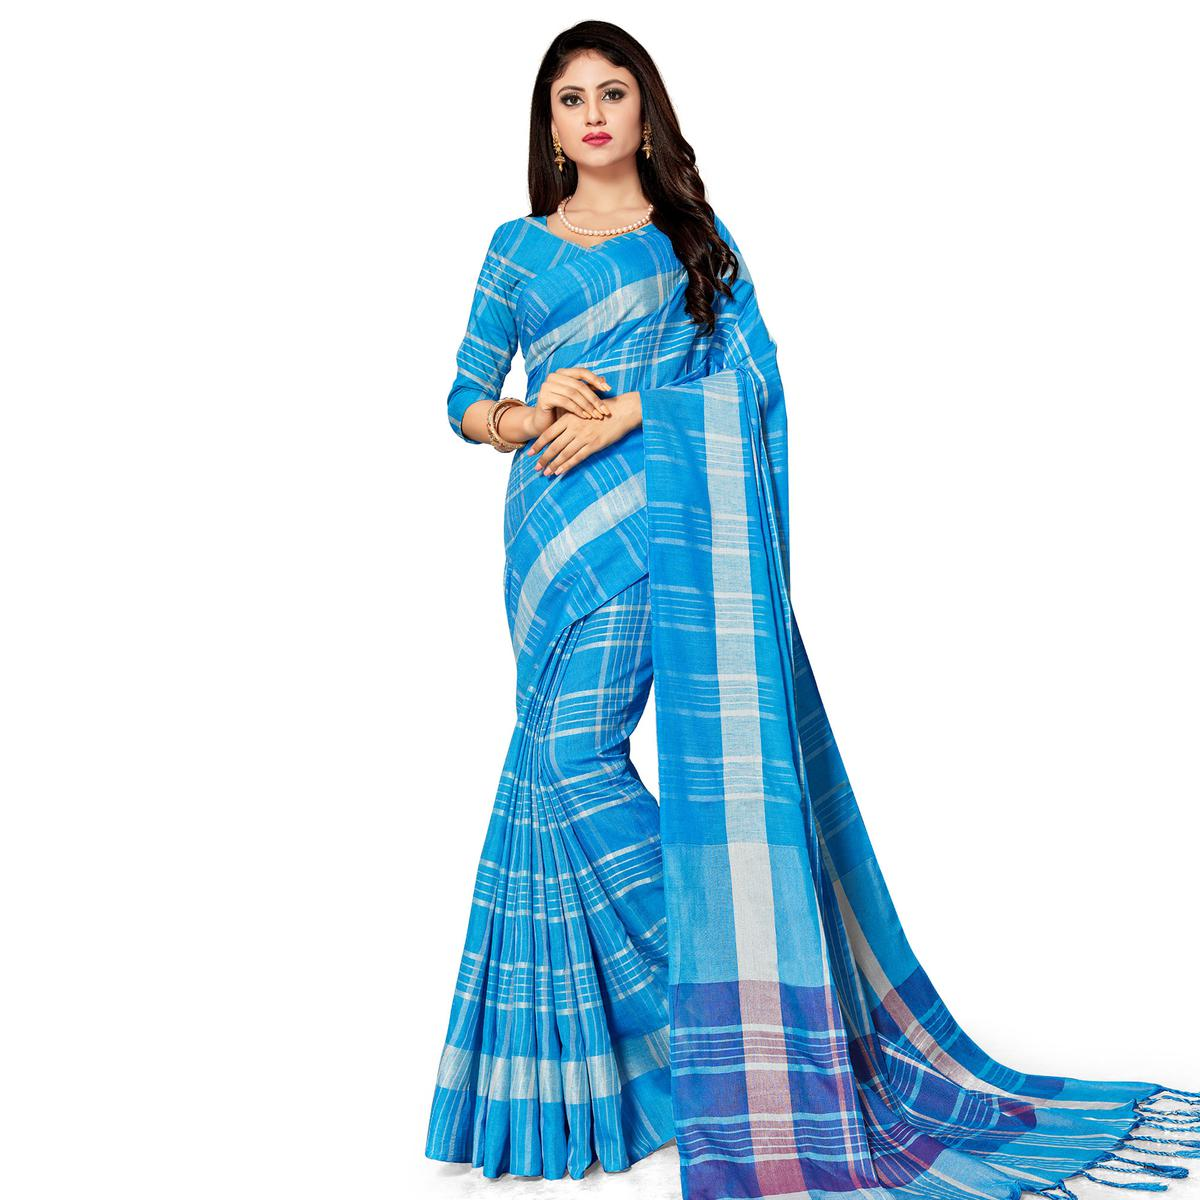 Prominent Blue Colored Fesive Wear Stripe Print Cotton Silk Saree With Tassels